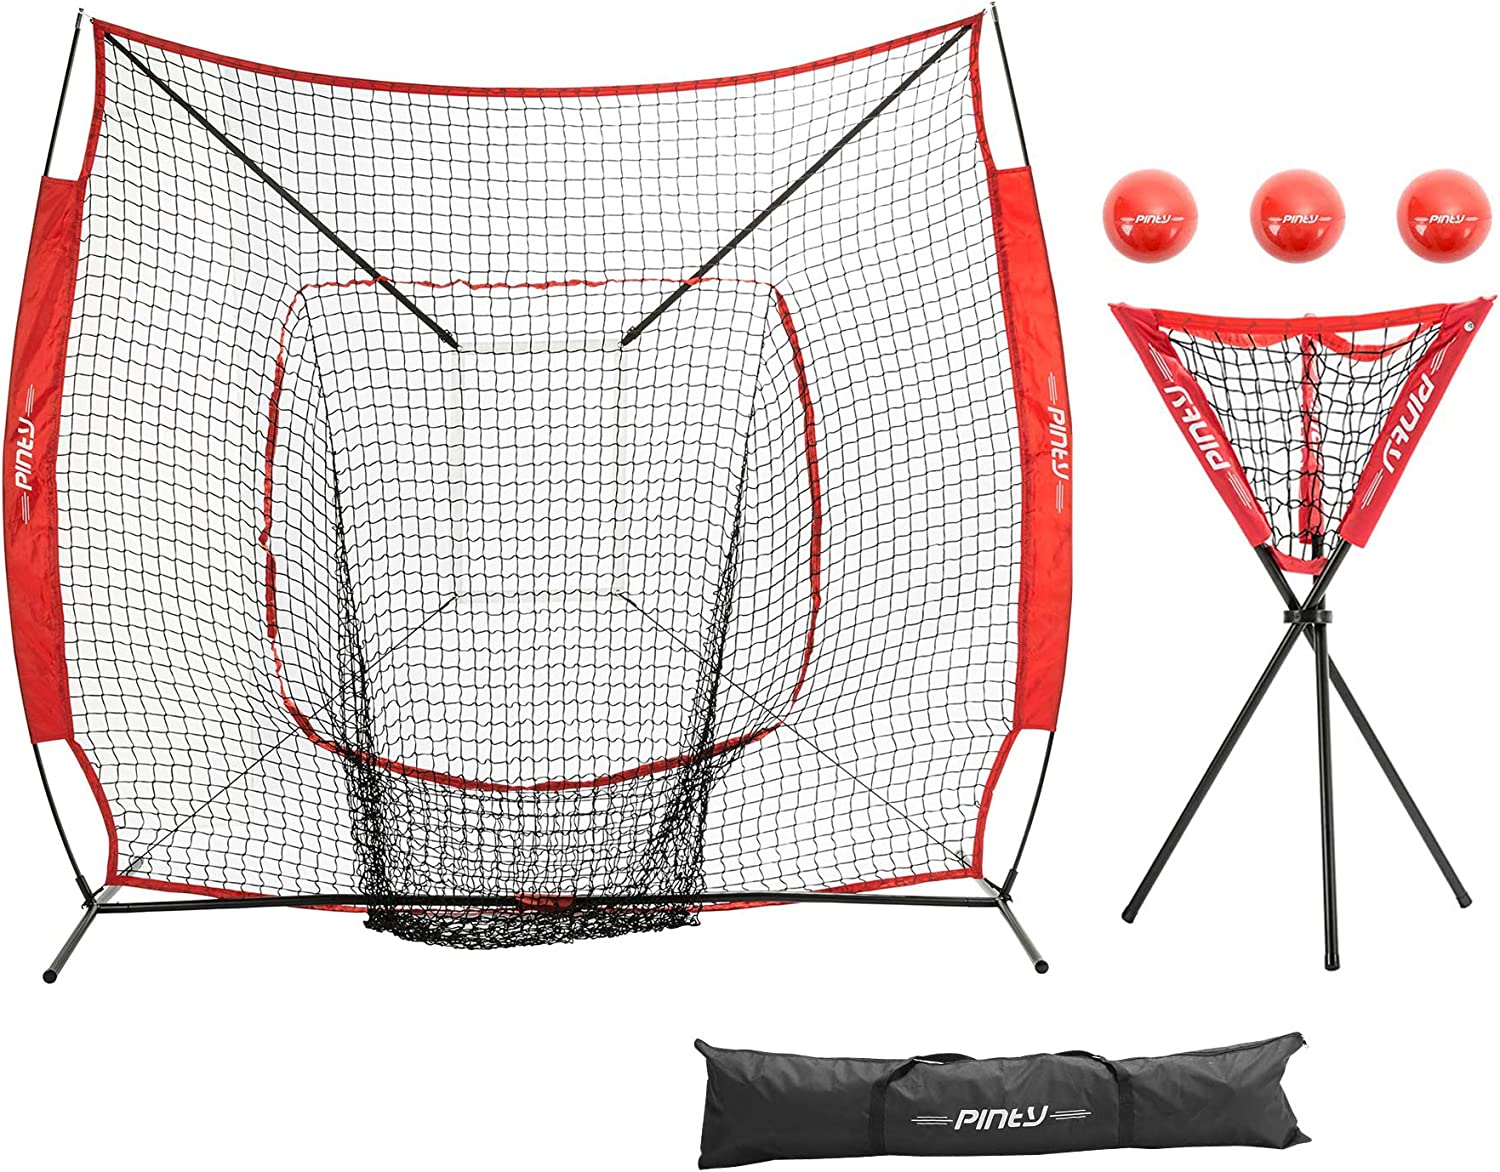 Pinty Baseball and Softball Practice Net 7 7 ft Portable Hitting Batting Training Net with Carry Bag, Metal Frame, Ball Caddy and Weighted Training Balls